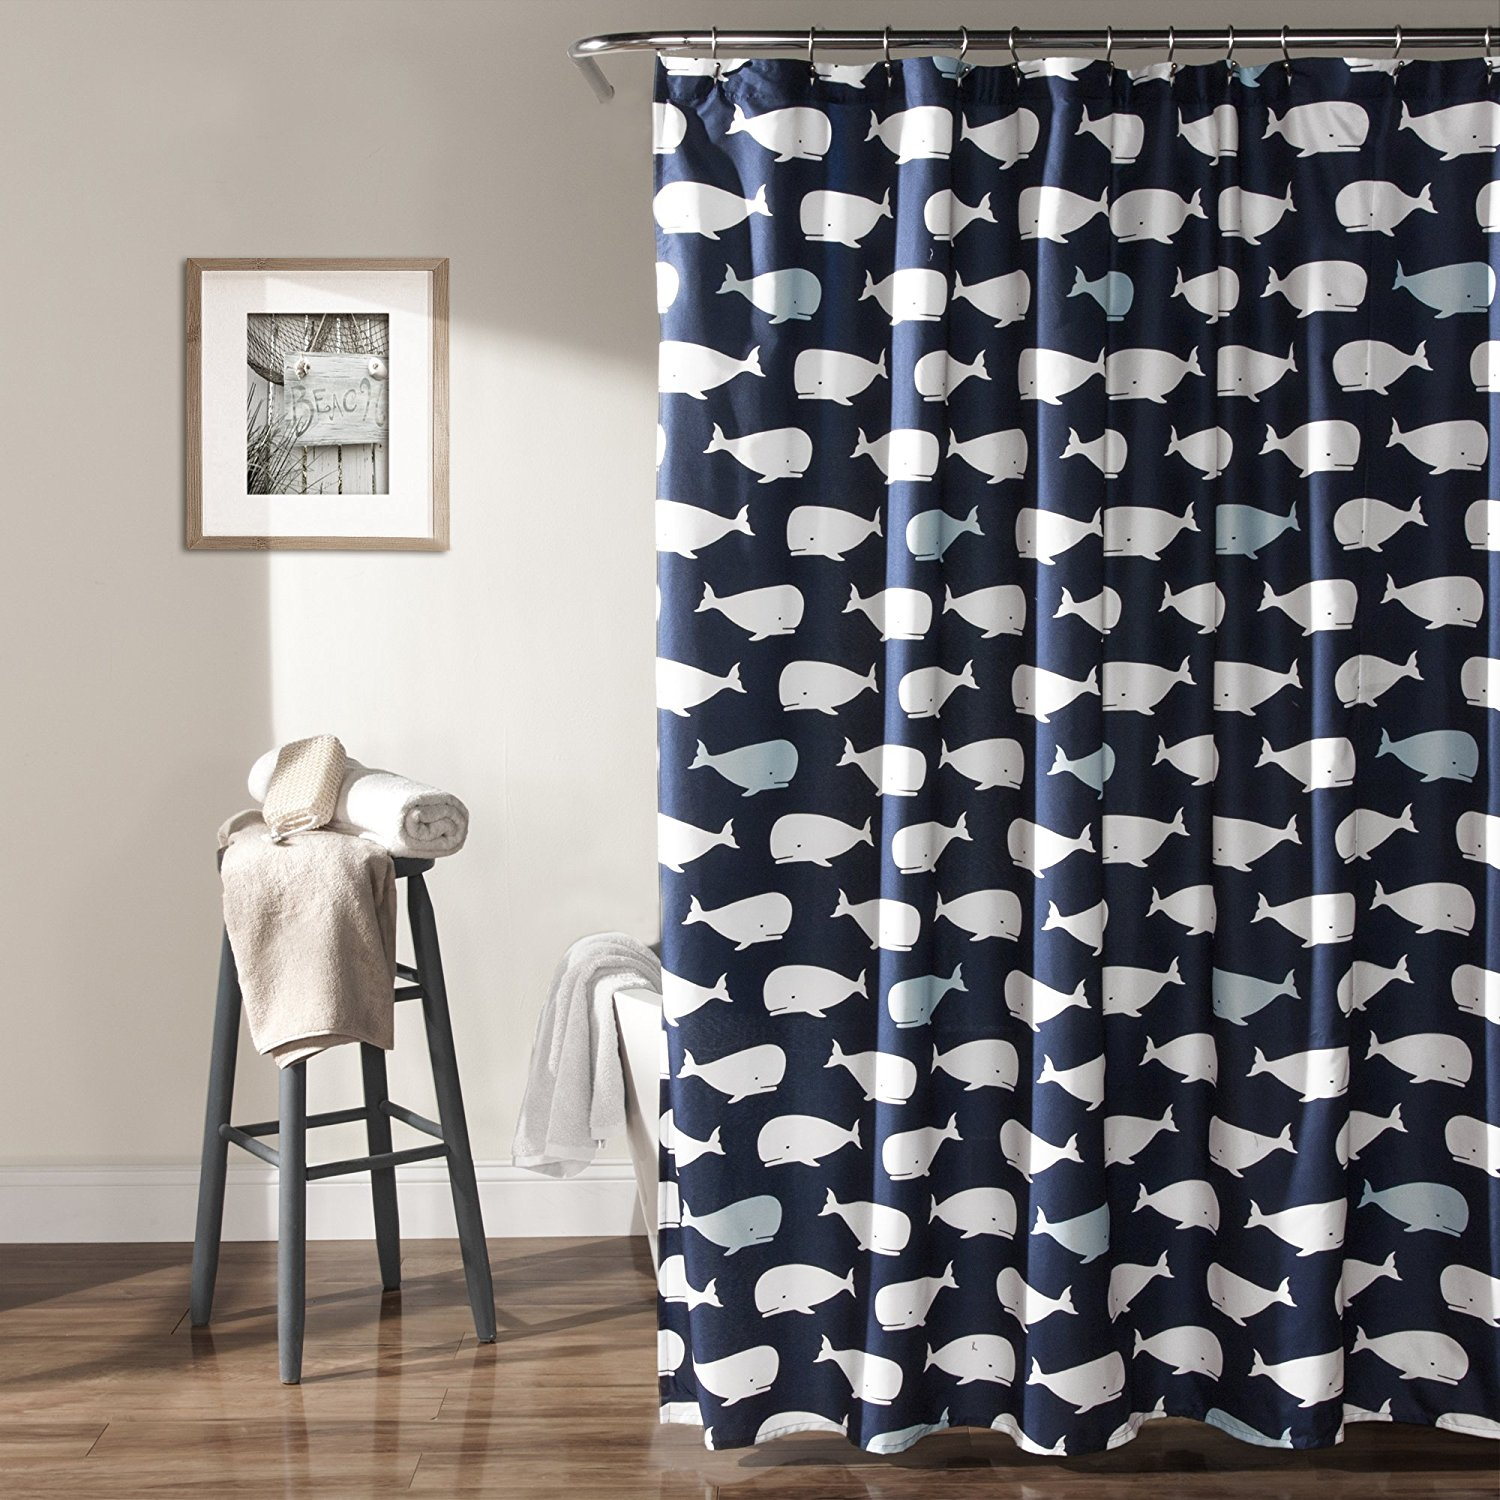 Shower Curtains 200 Drop | Gopelling.net